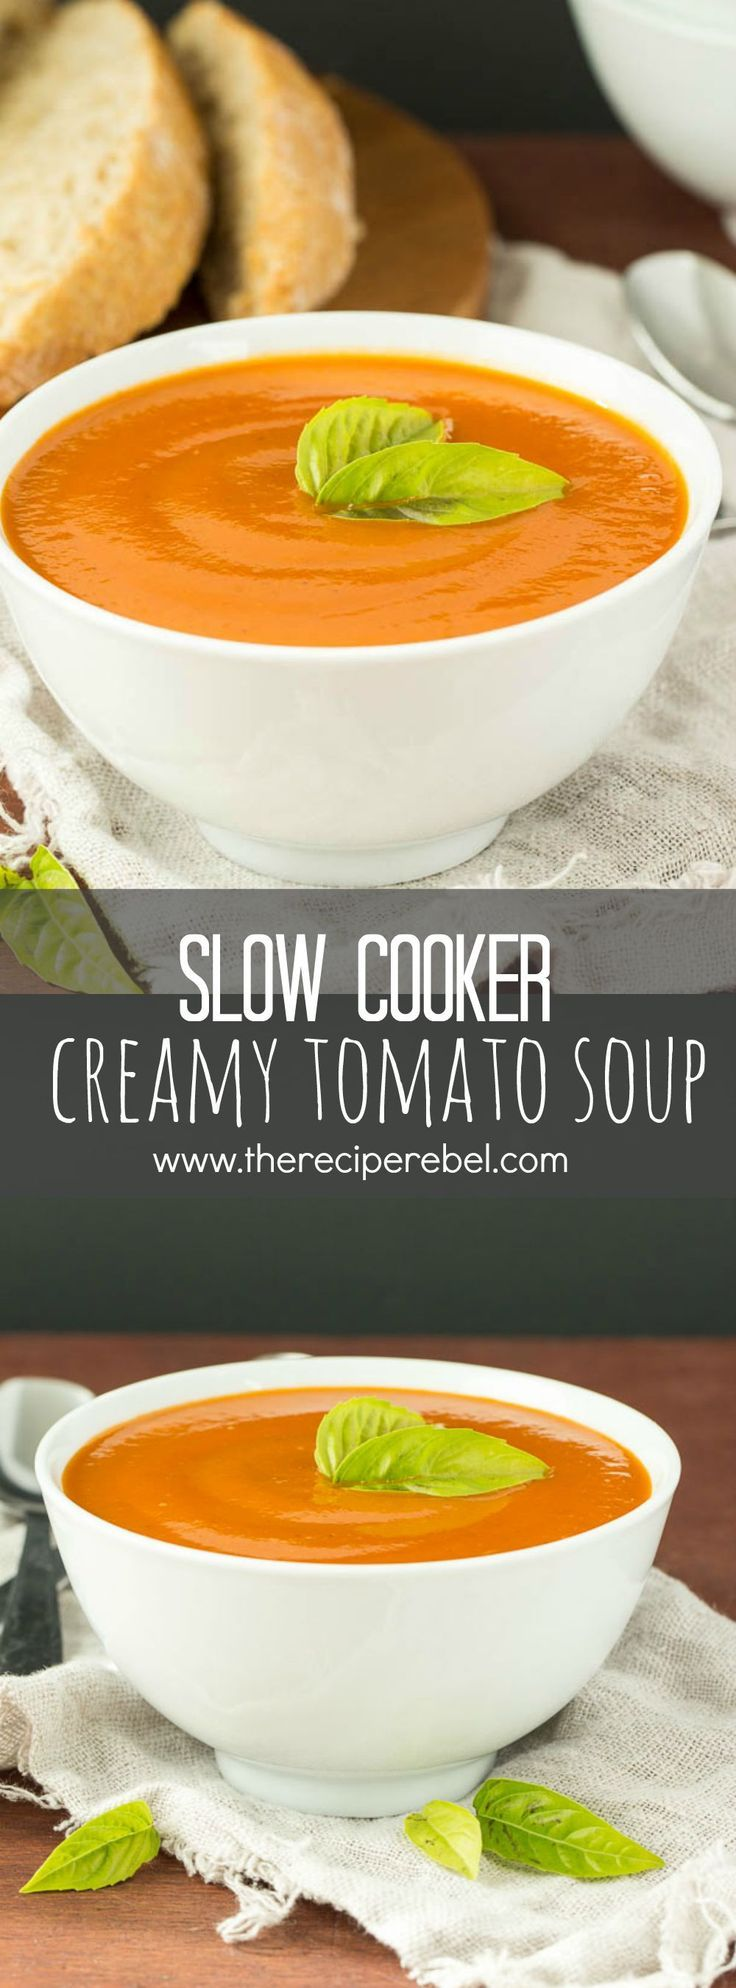 Slow Cooker Creamy Tomato Soup: Tomatoes and vegetables simmer away all day until tender, then they're pureed to make this ultra creamy, vibrant tomato soup that is secretly loaded with veggies! Your kids will never know! www.thereciperebel.com